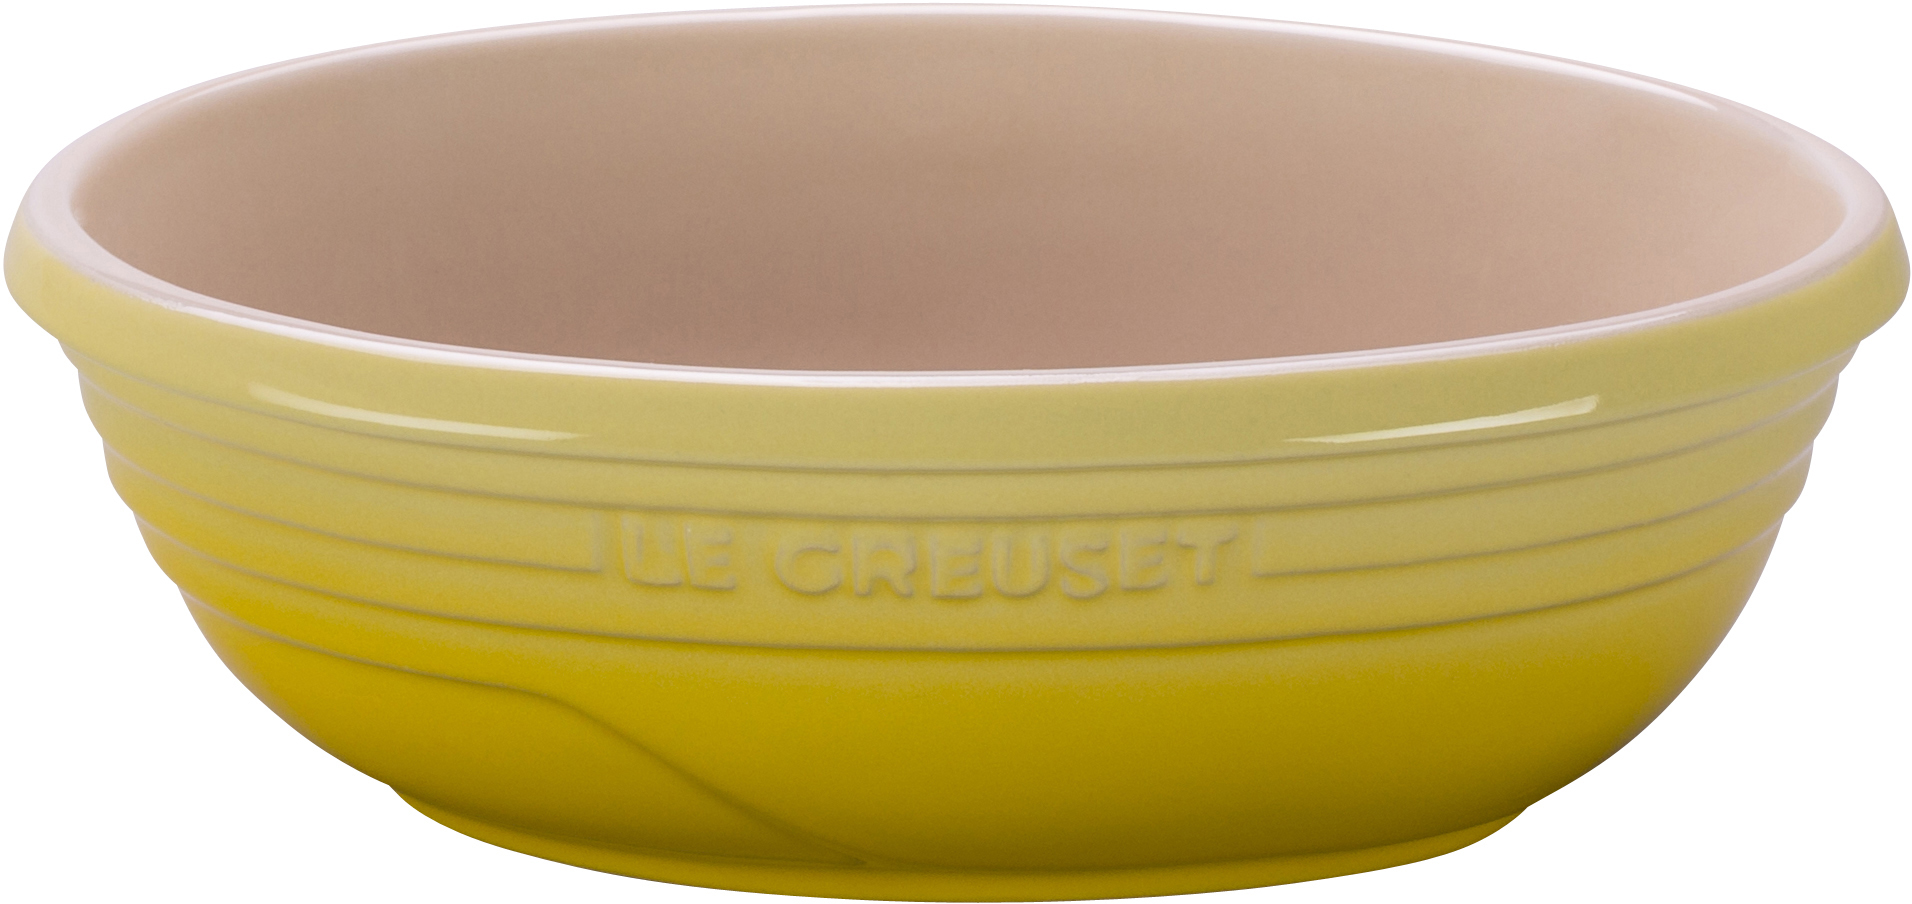 Le Creuset Soleil Yellow Stoneware Small Oval Serving Bowl